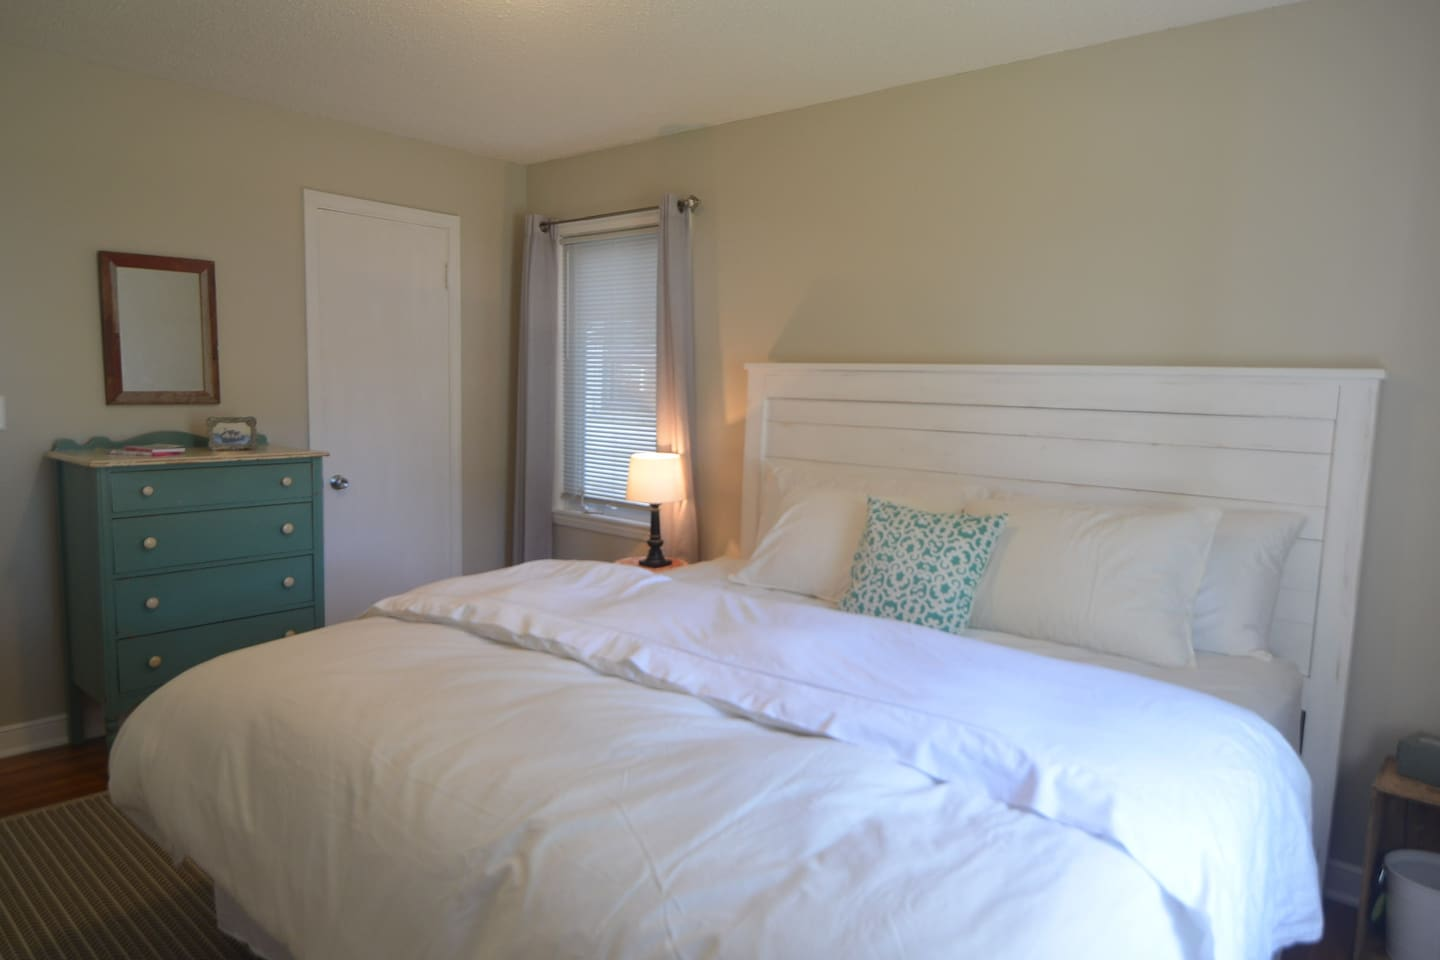 Pamper yourself with a king-sized bed, 100 percent cotton sheets, and a down comforter. The master bedroom has a walk-in closet and a dresser to make you feel right at home.